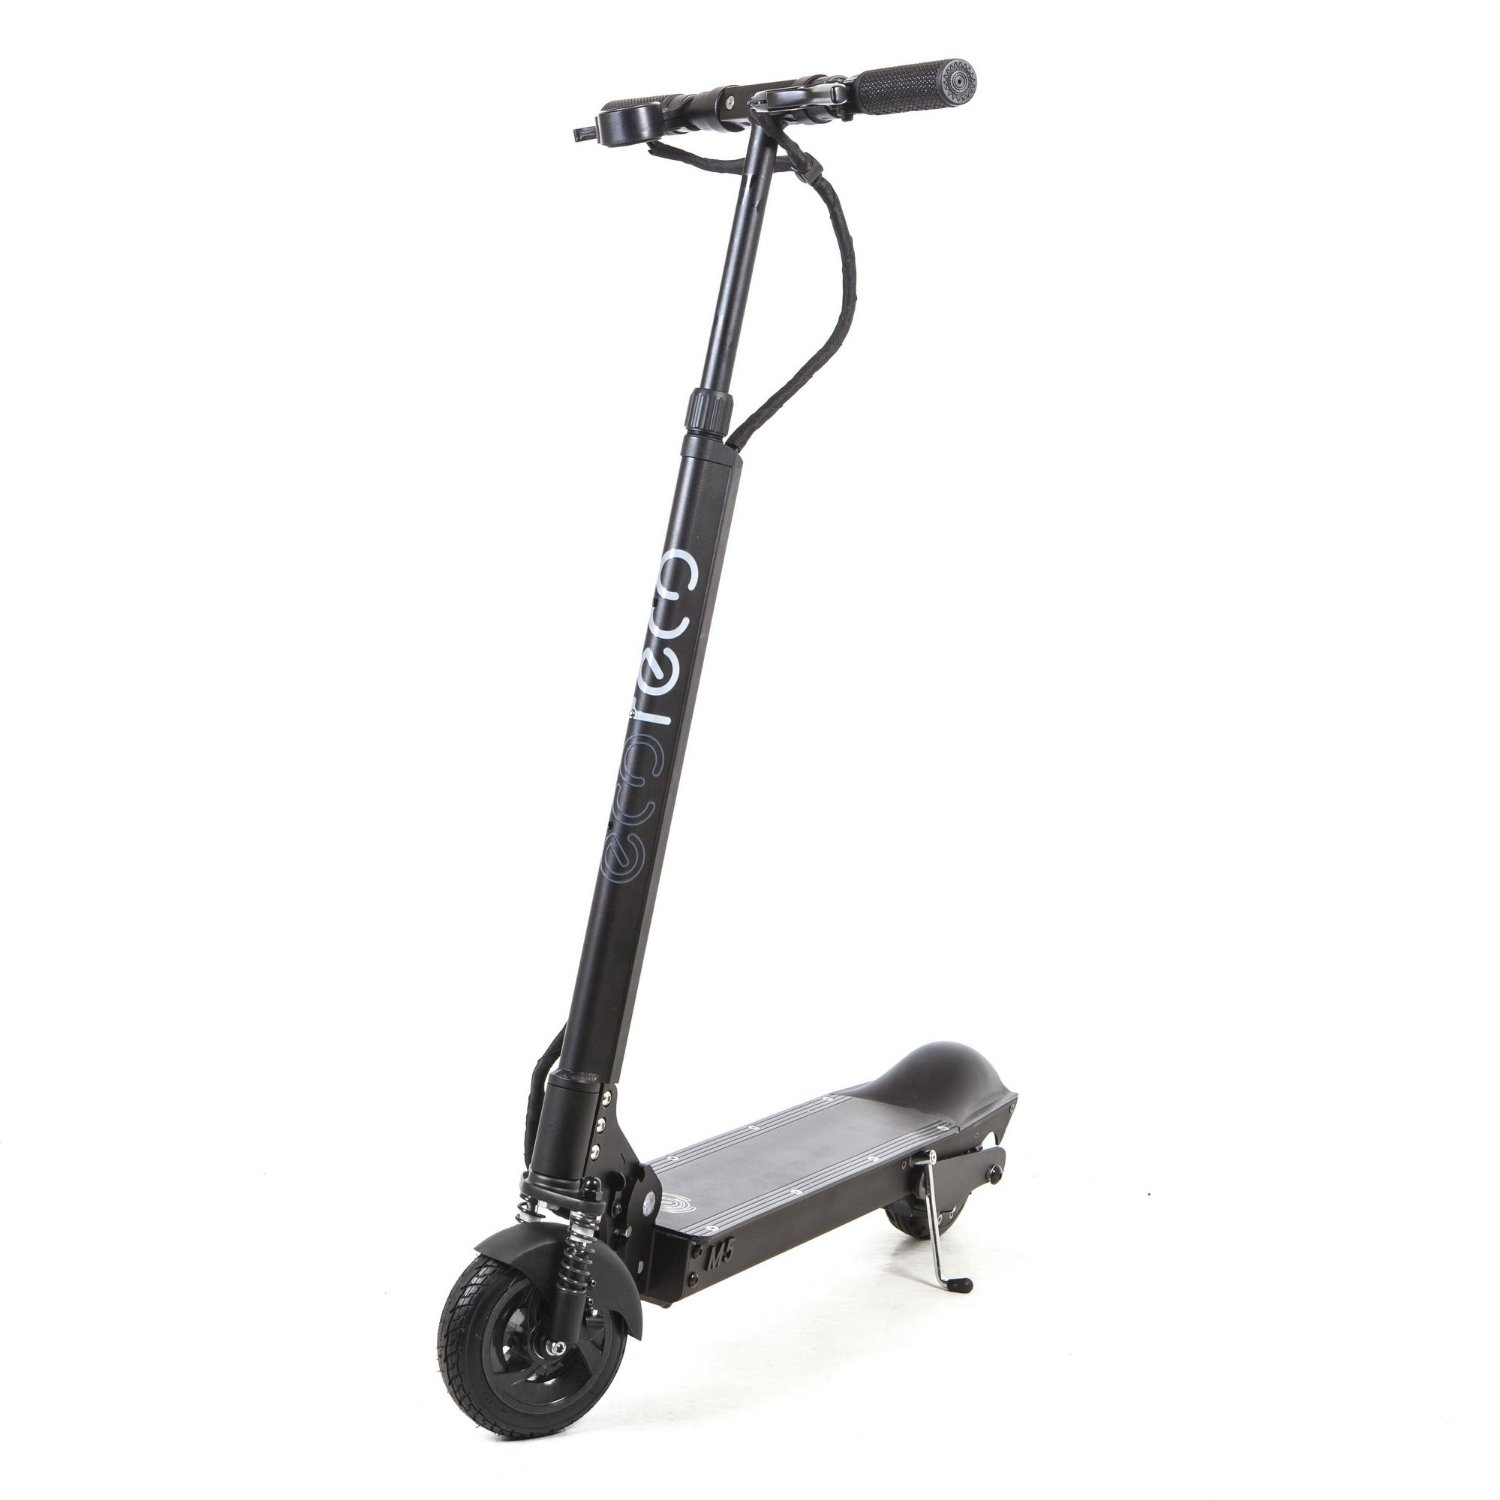 The Ecoreco M5 Electric Scooter Review Best Electric